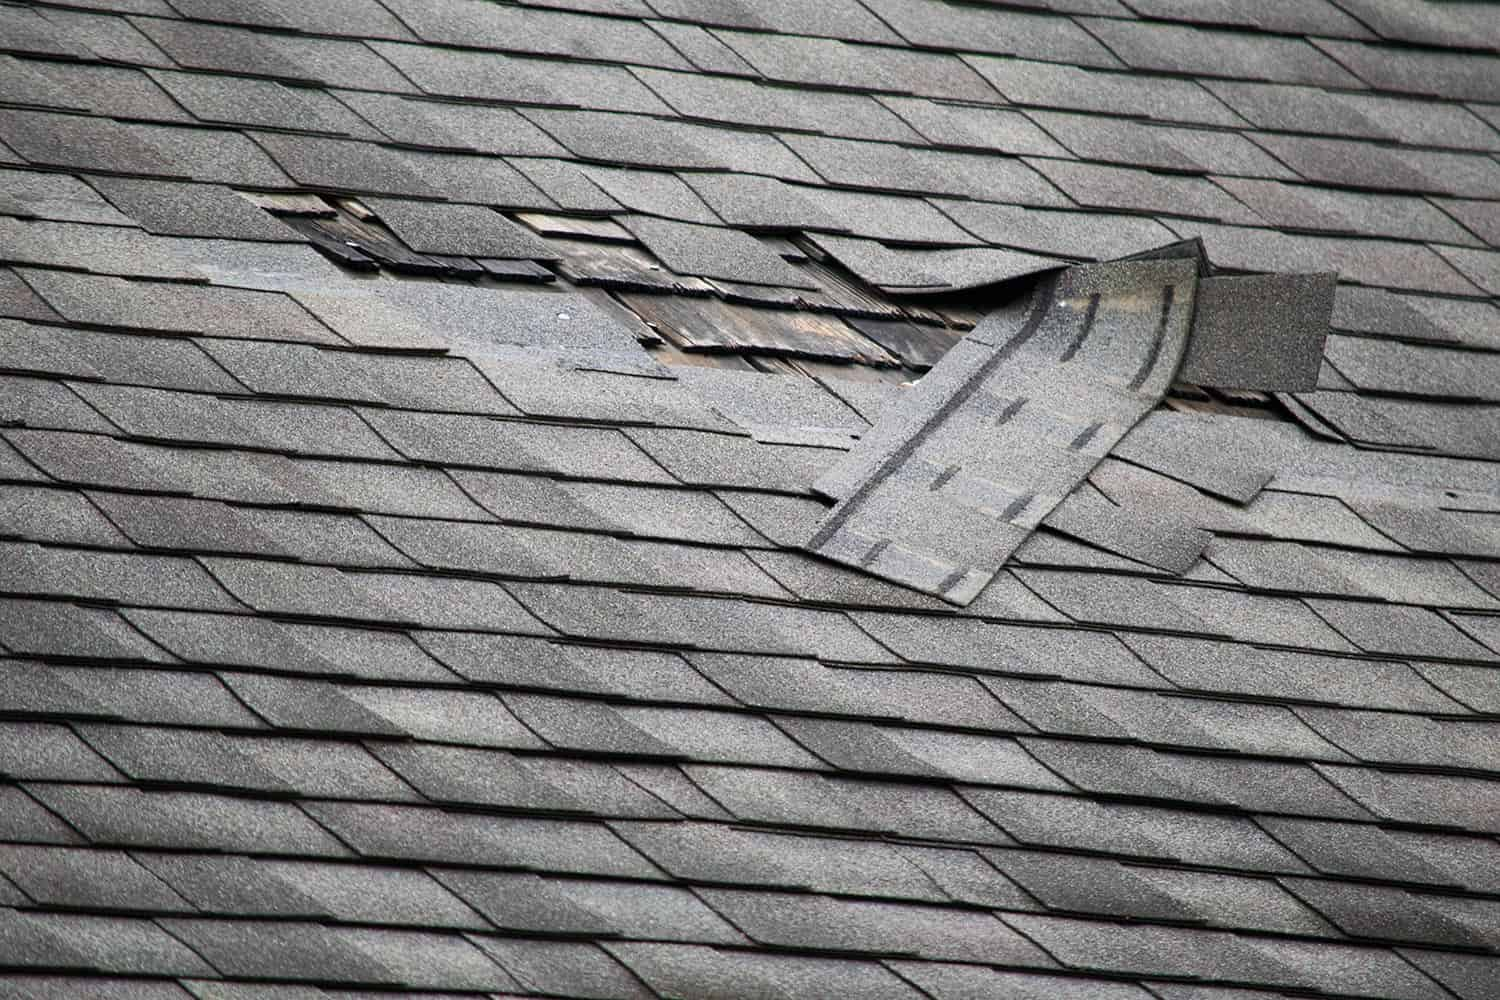 A badly damaged roof with missing shingles